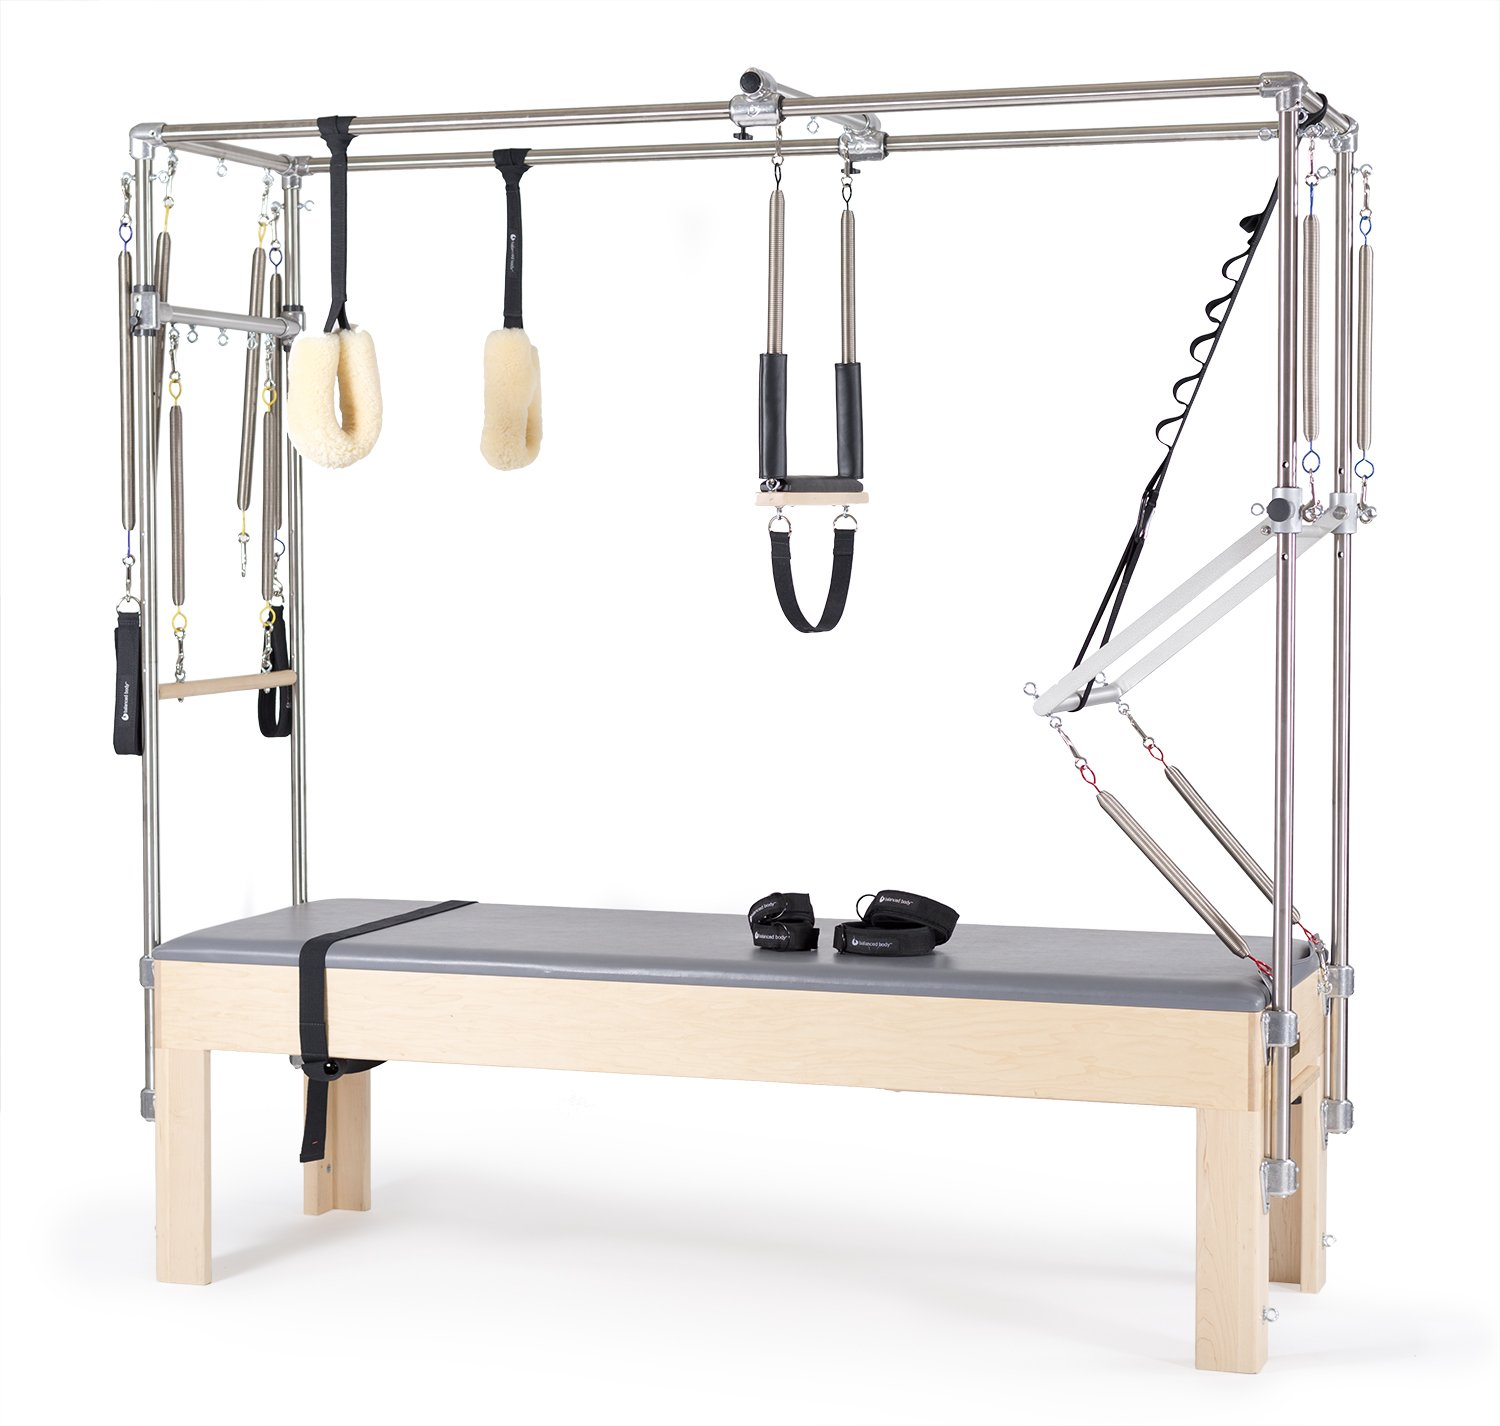 Trapeze Table (Cadillac) by Balanced Body (Image #1)